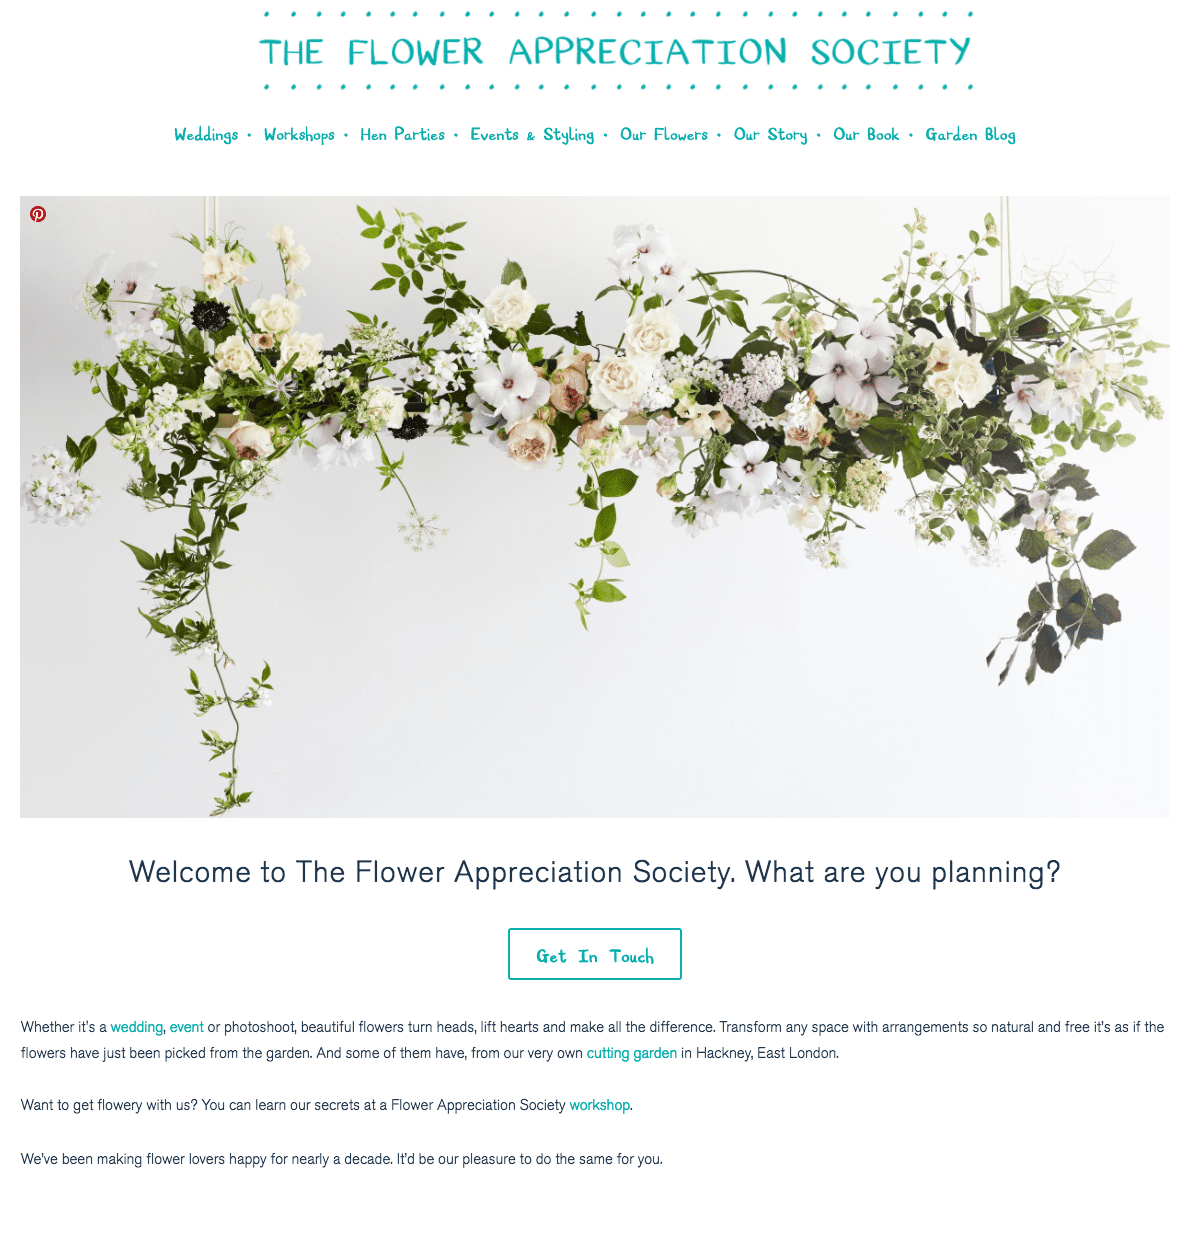 Screen Shot 2017 09 29 at 15.05.04 - The Flower Appreciation Society